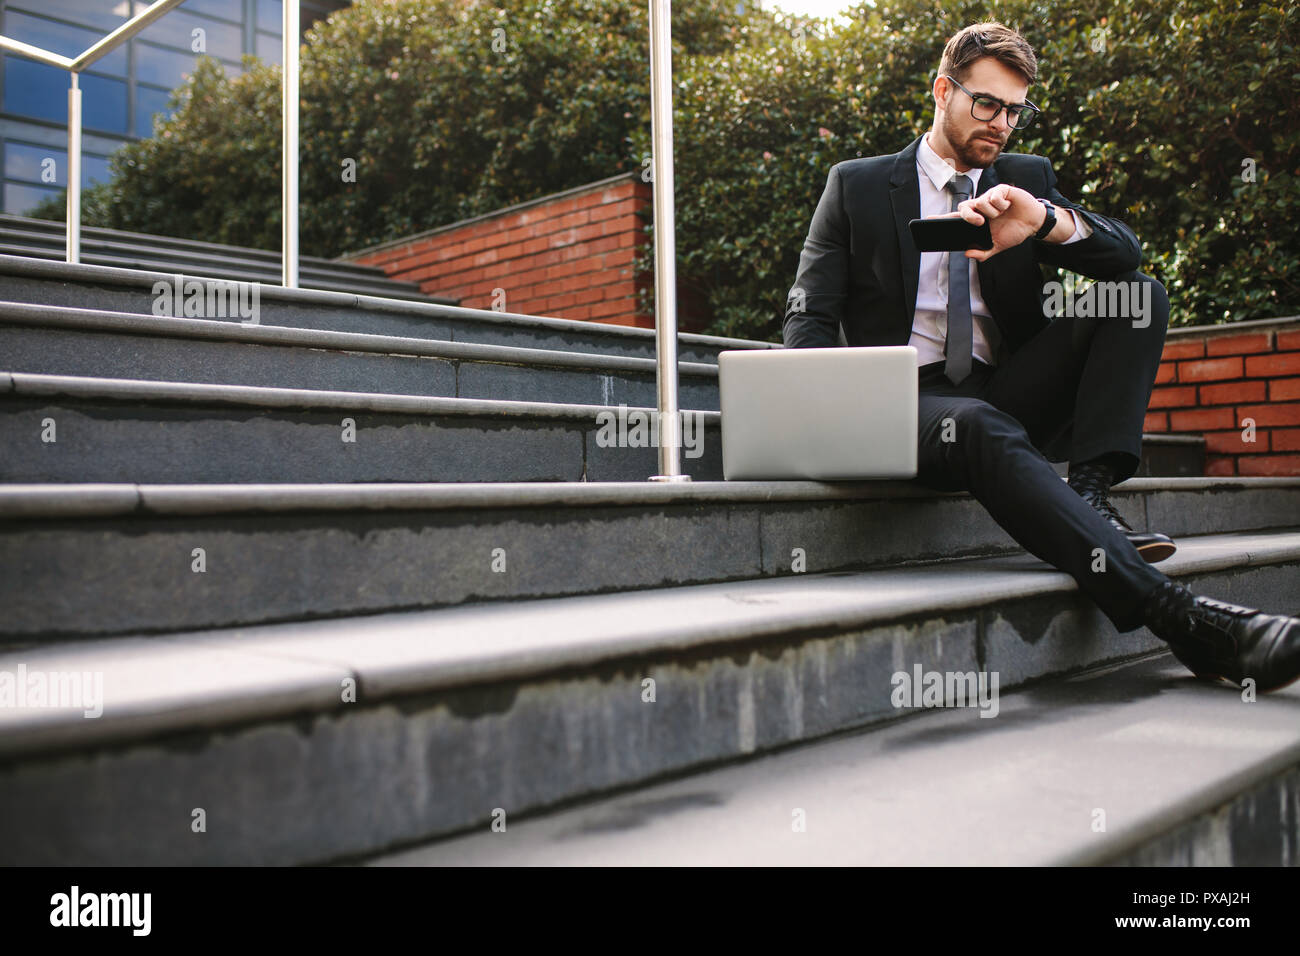 Business professional sitting on steps outdoors with laptop checking time. Young businessman waiting for someone outdoors. - Stock Image